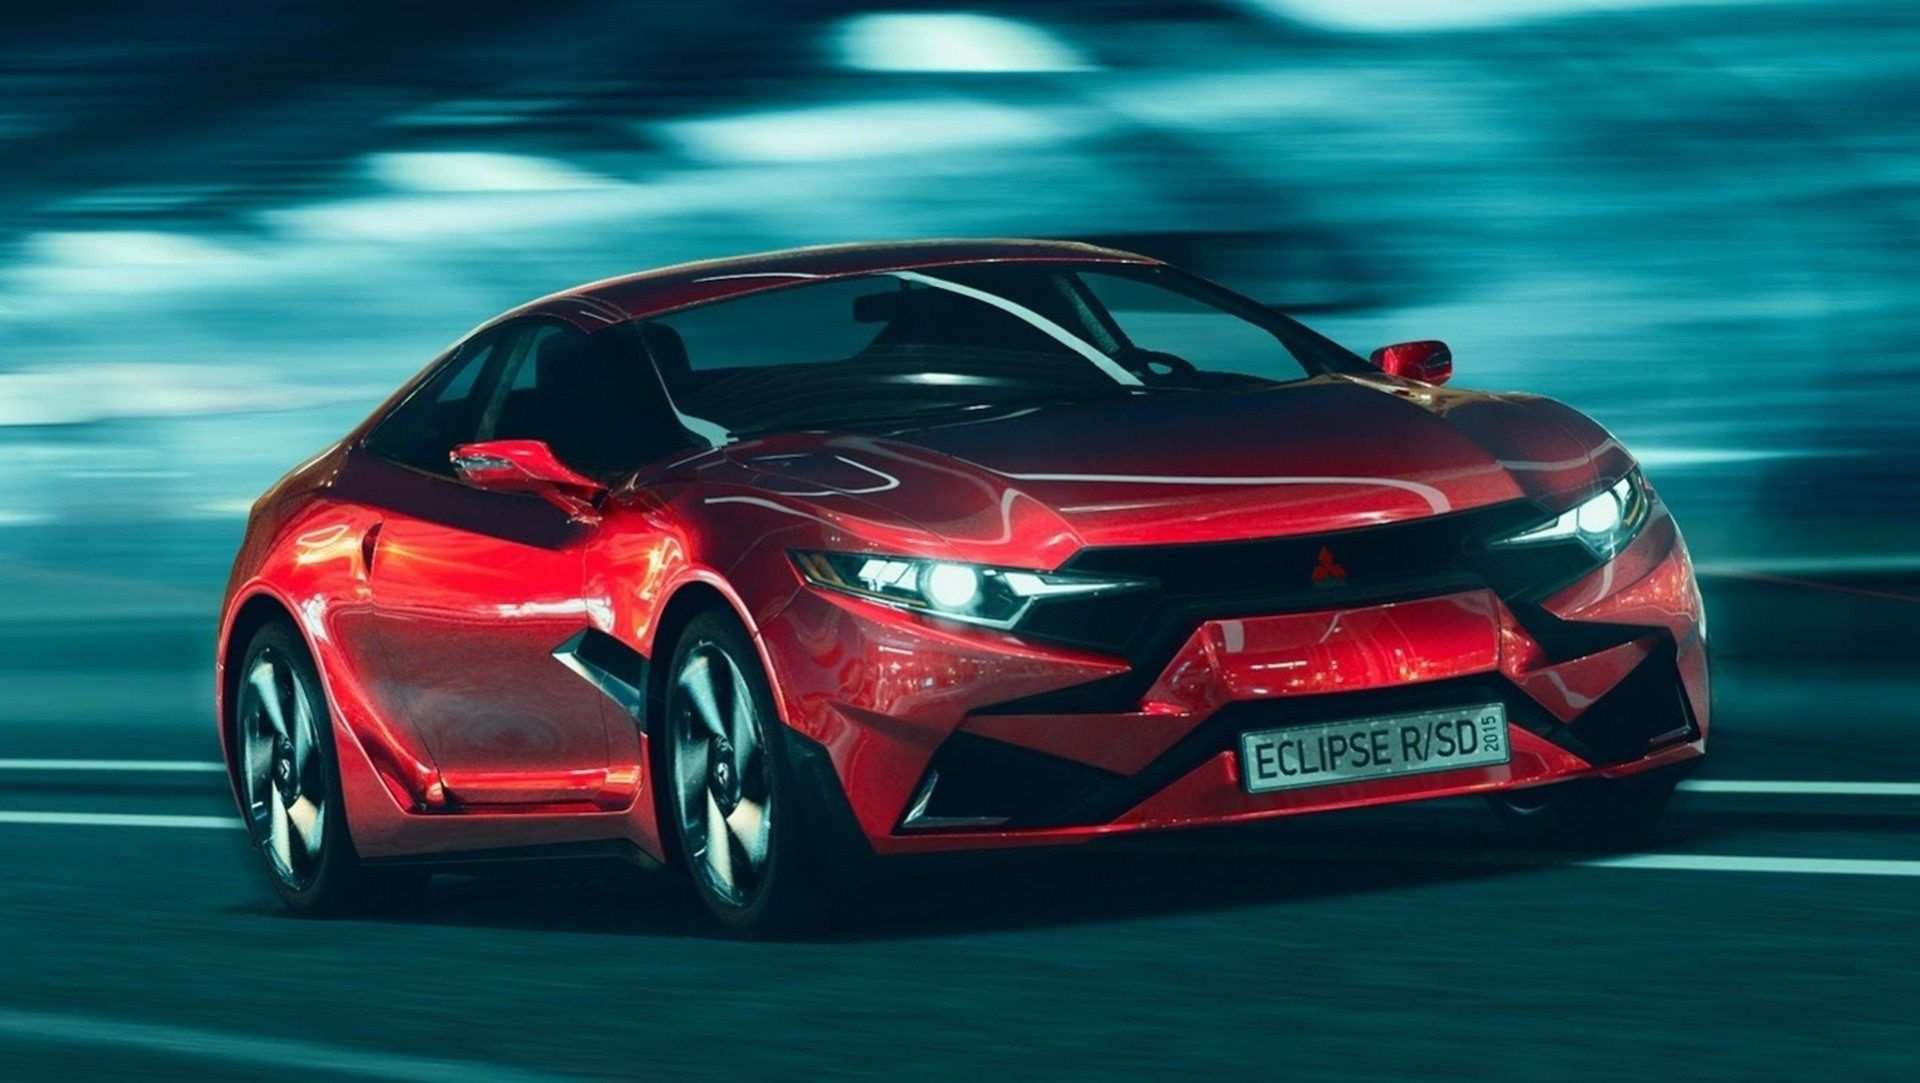 19 All New Mitsubishi Eclipse Coupe 2020 Price by Mitsubishi Eclipse Coupe 2020